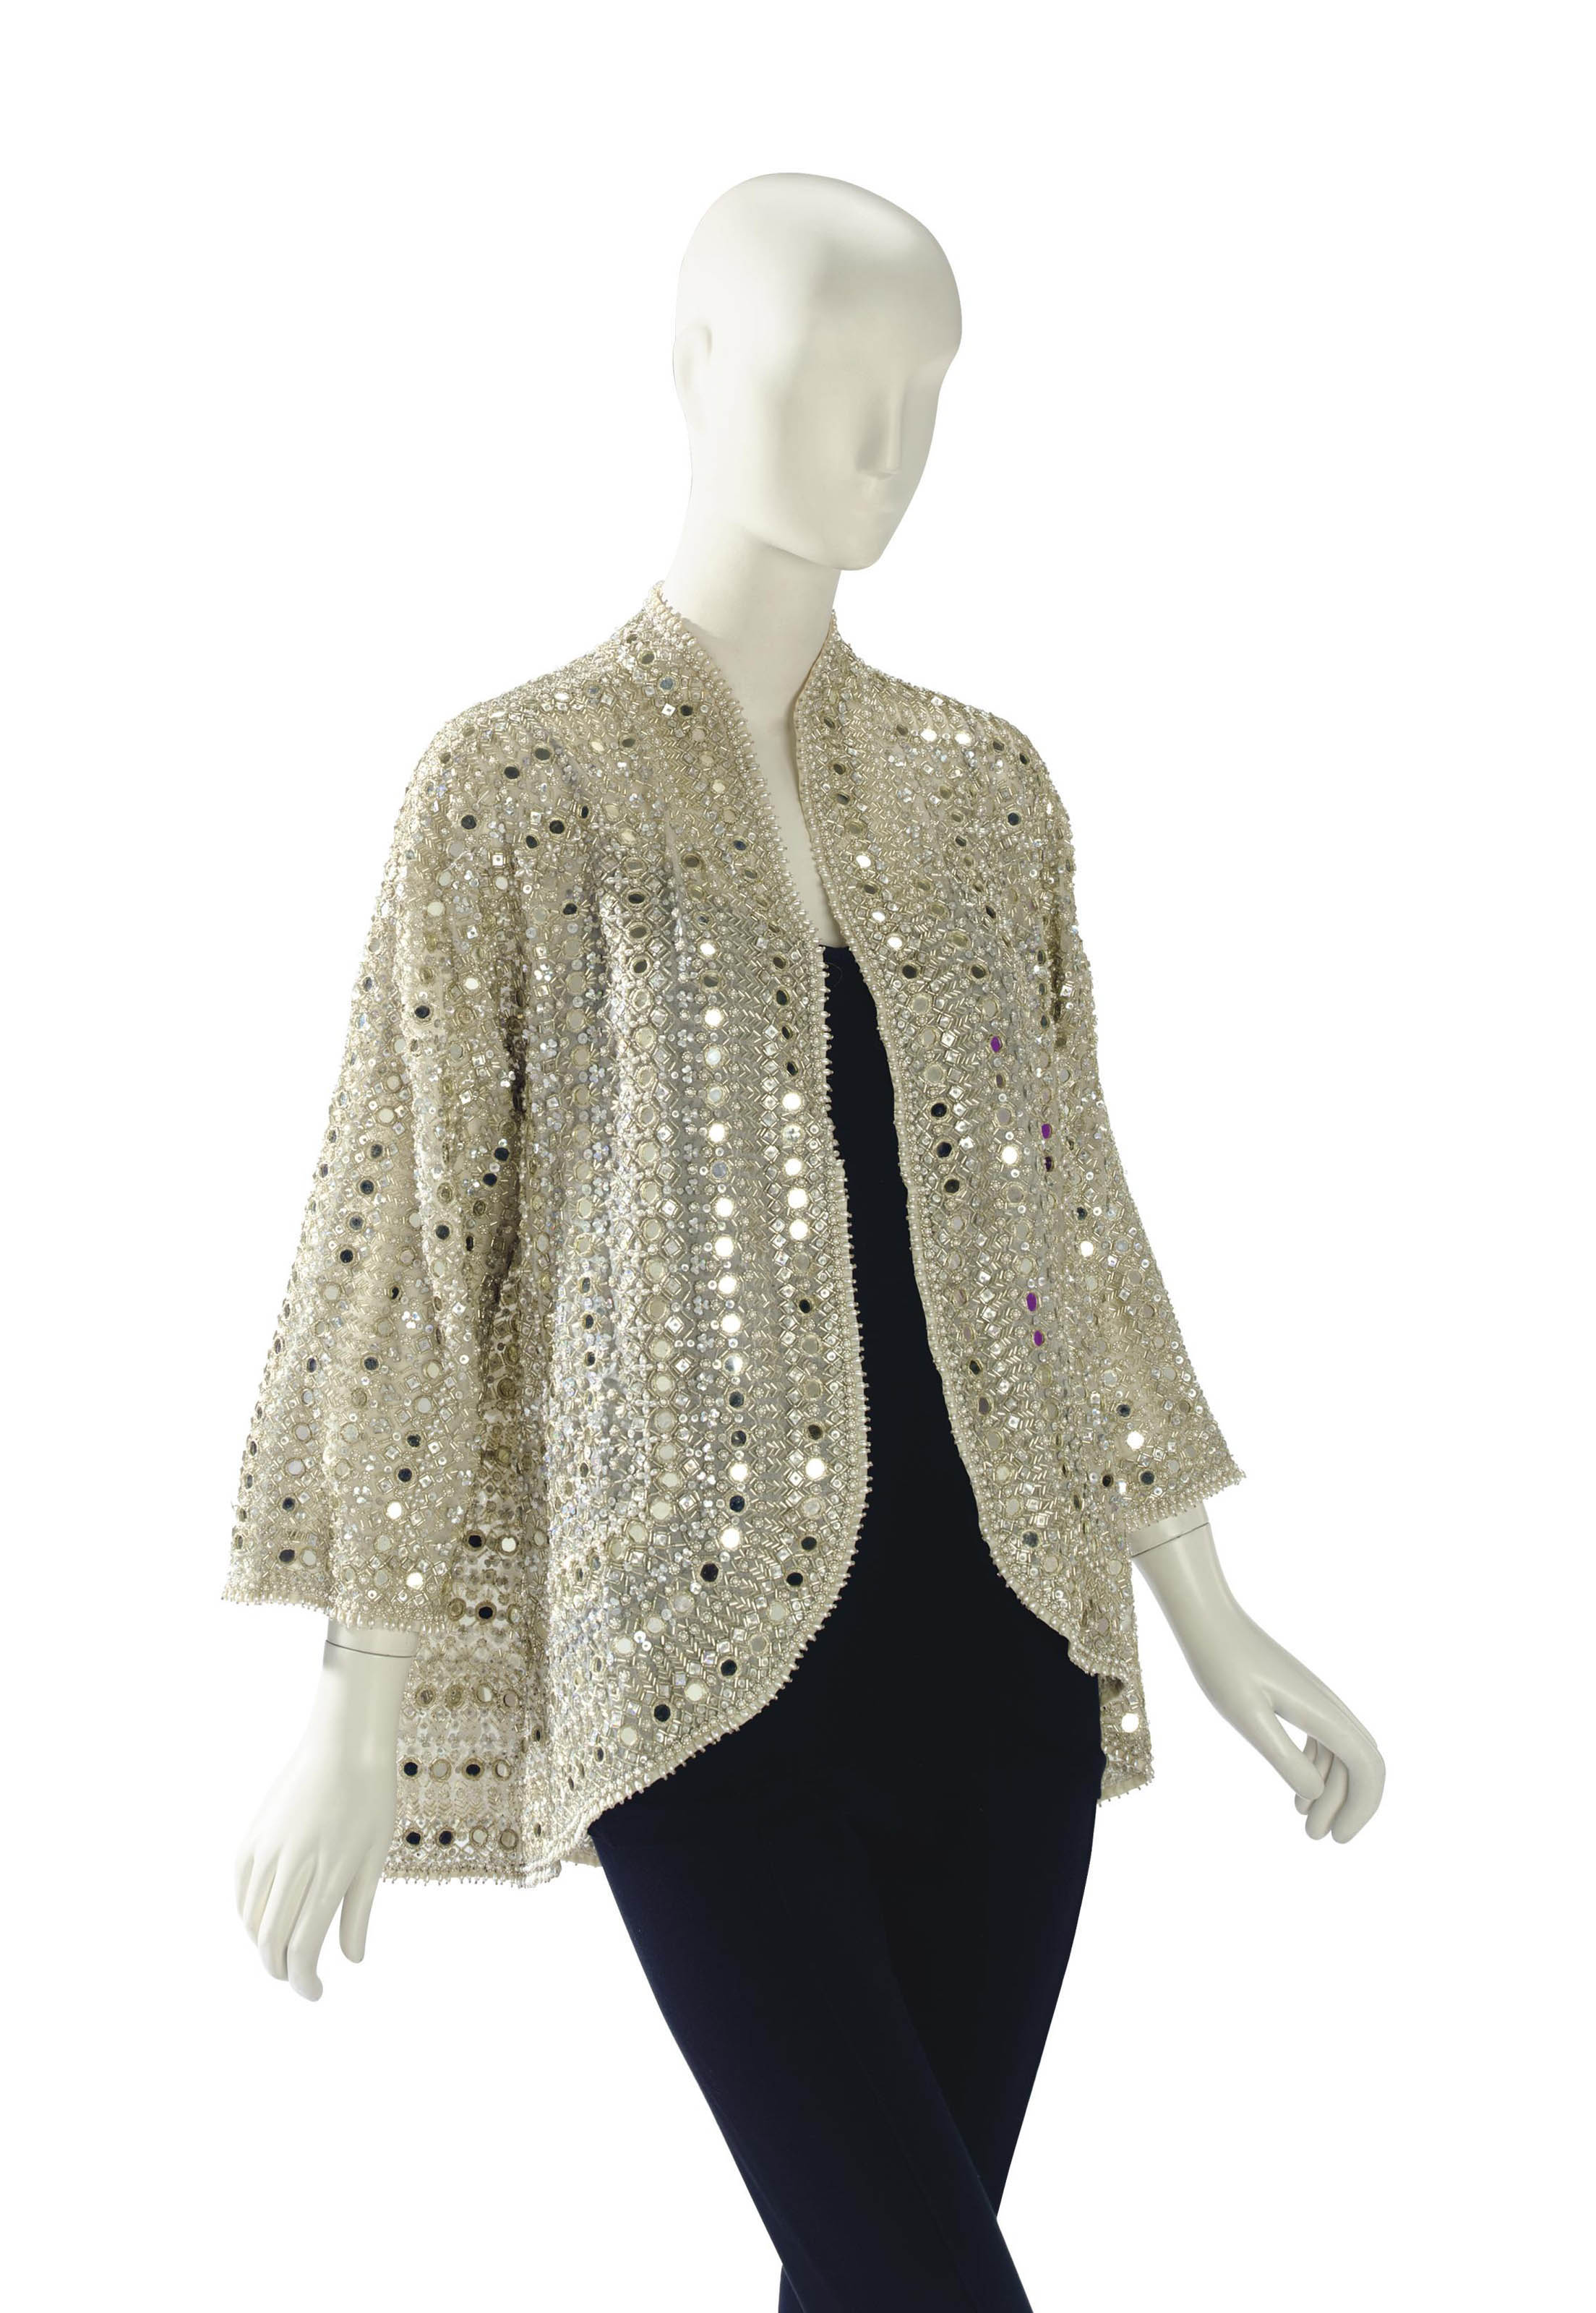 A HALSTON BEADED EVENING JACKET